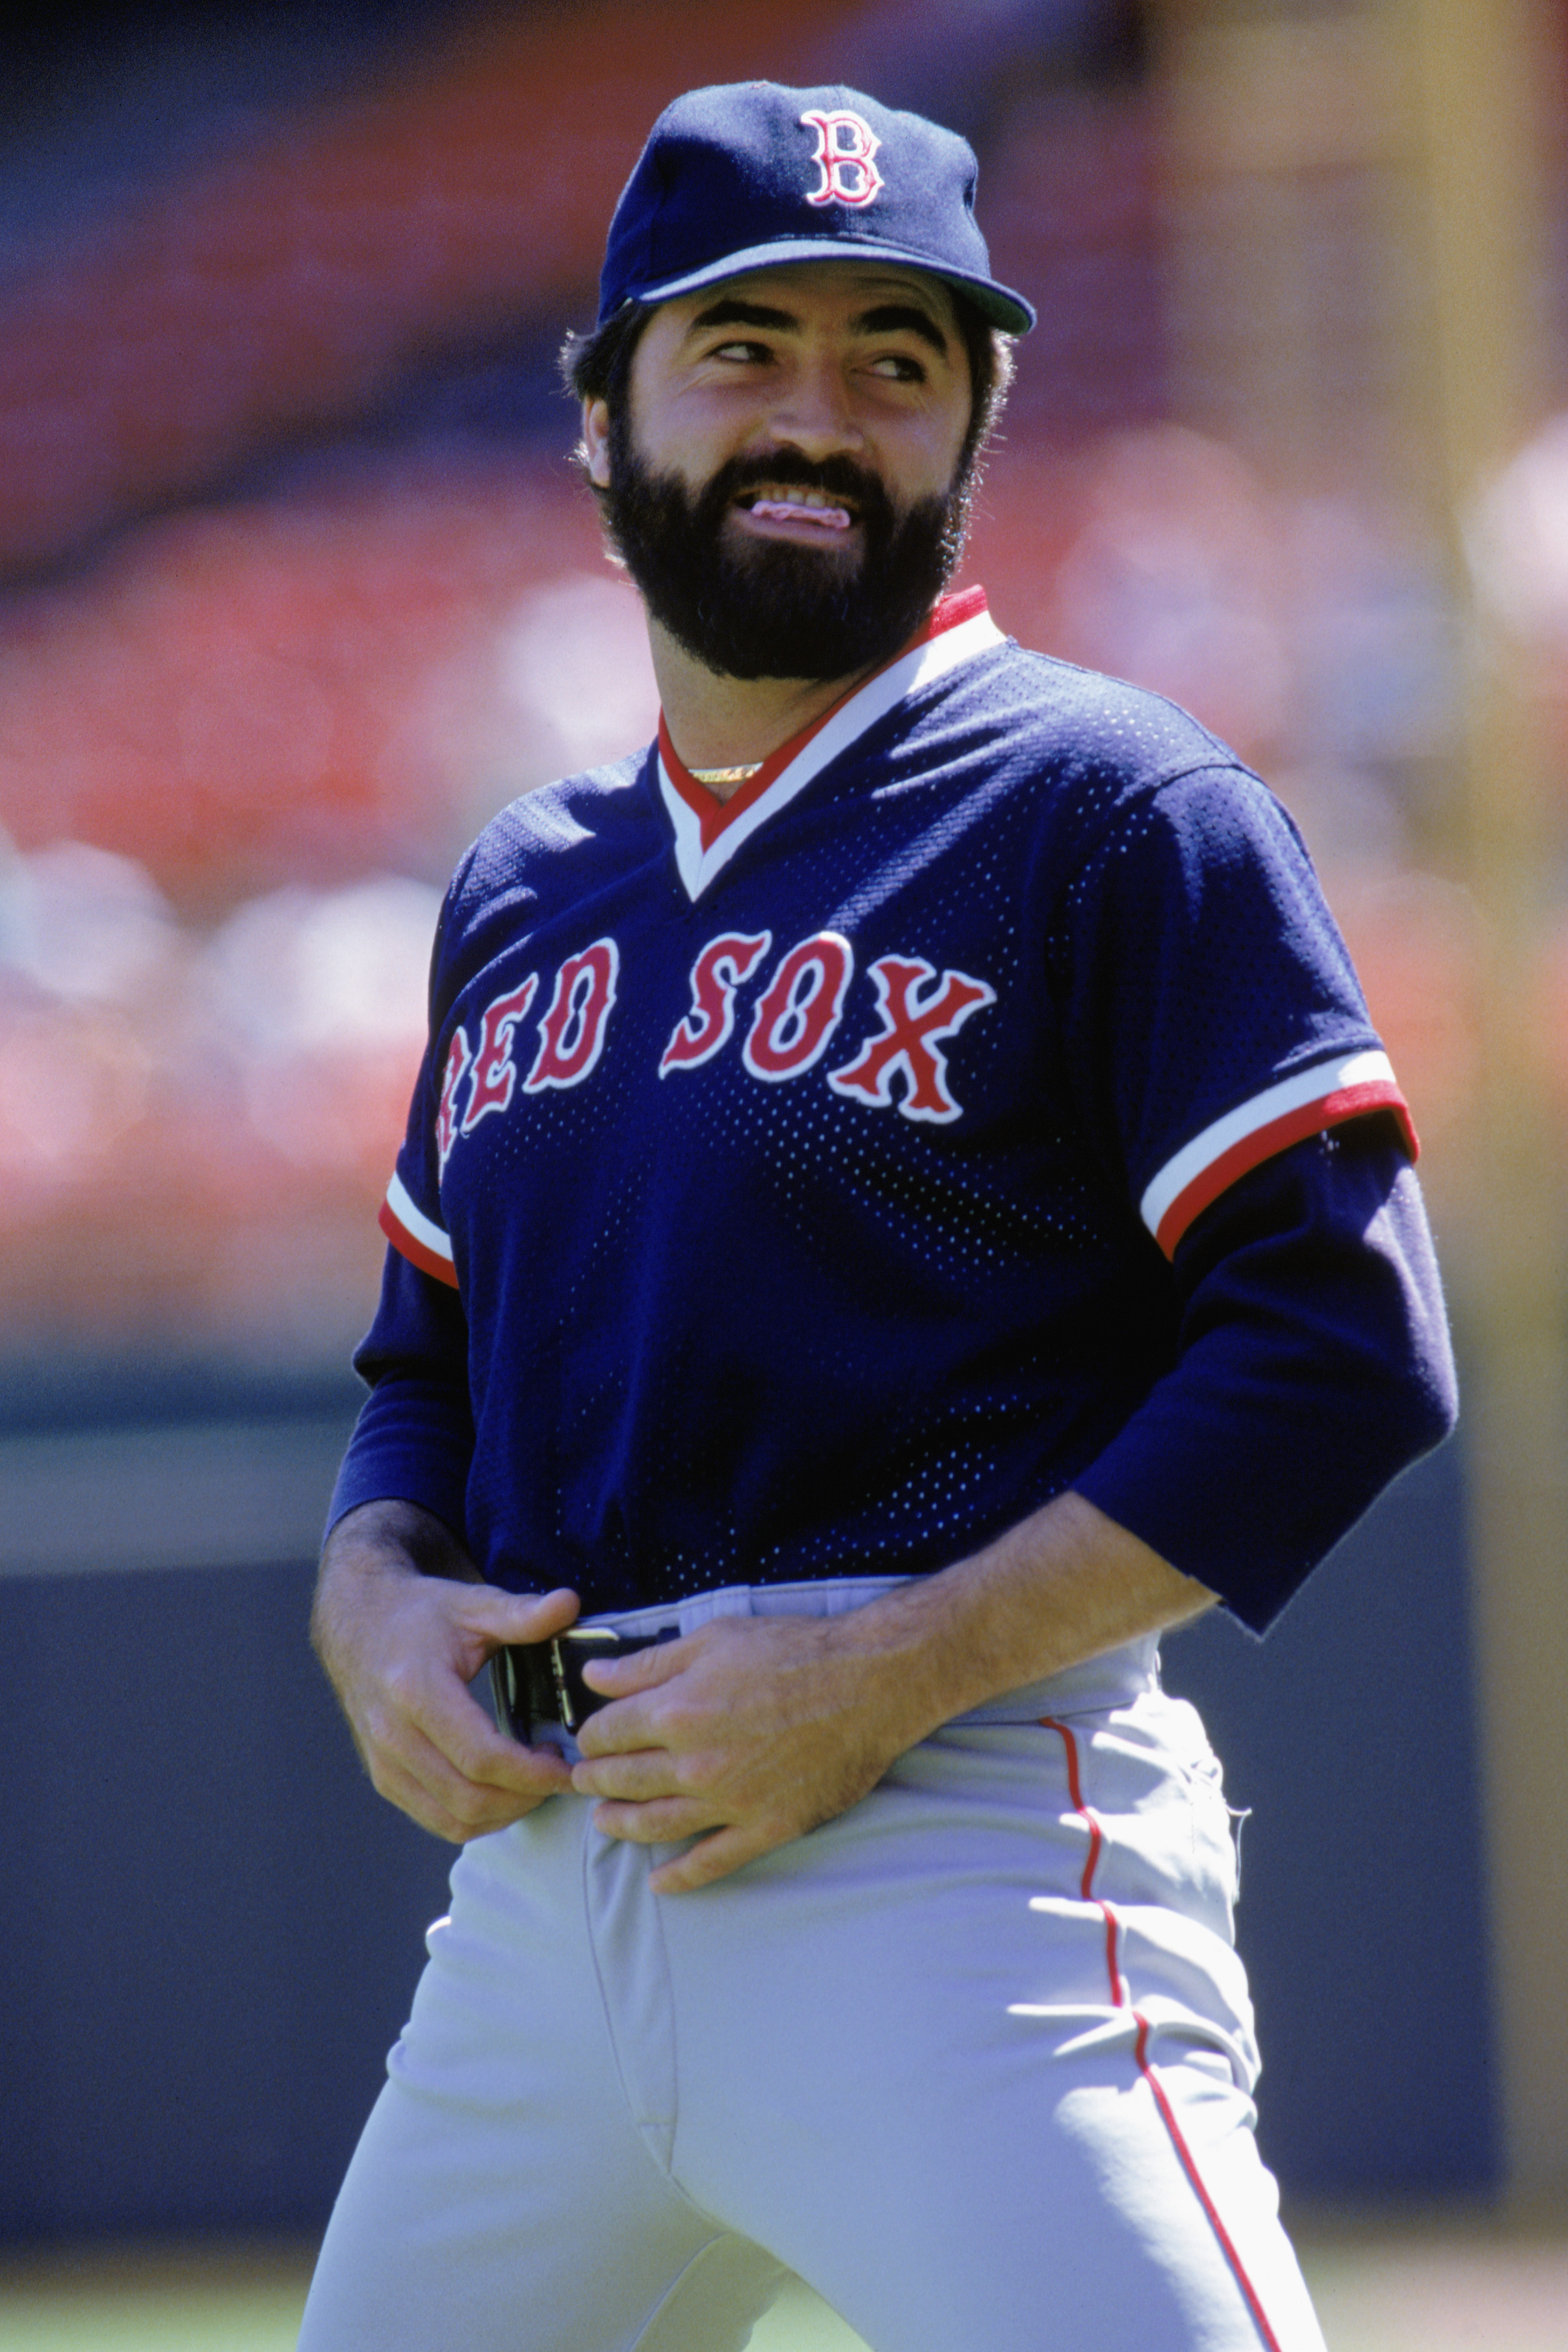 1990:  Jeff Reardon of the Boston Red Sox looks on during the 1990 season. (Photo by Otto Greule Jr/Getty Images)